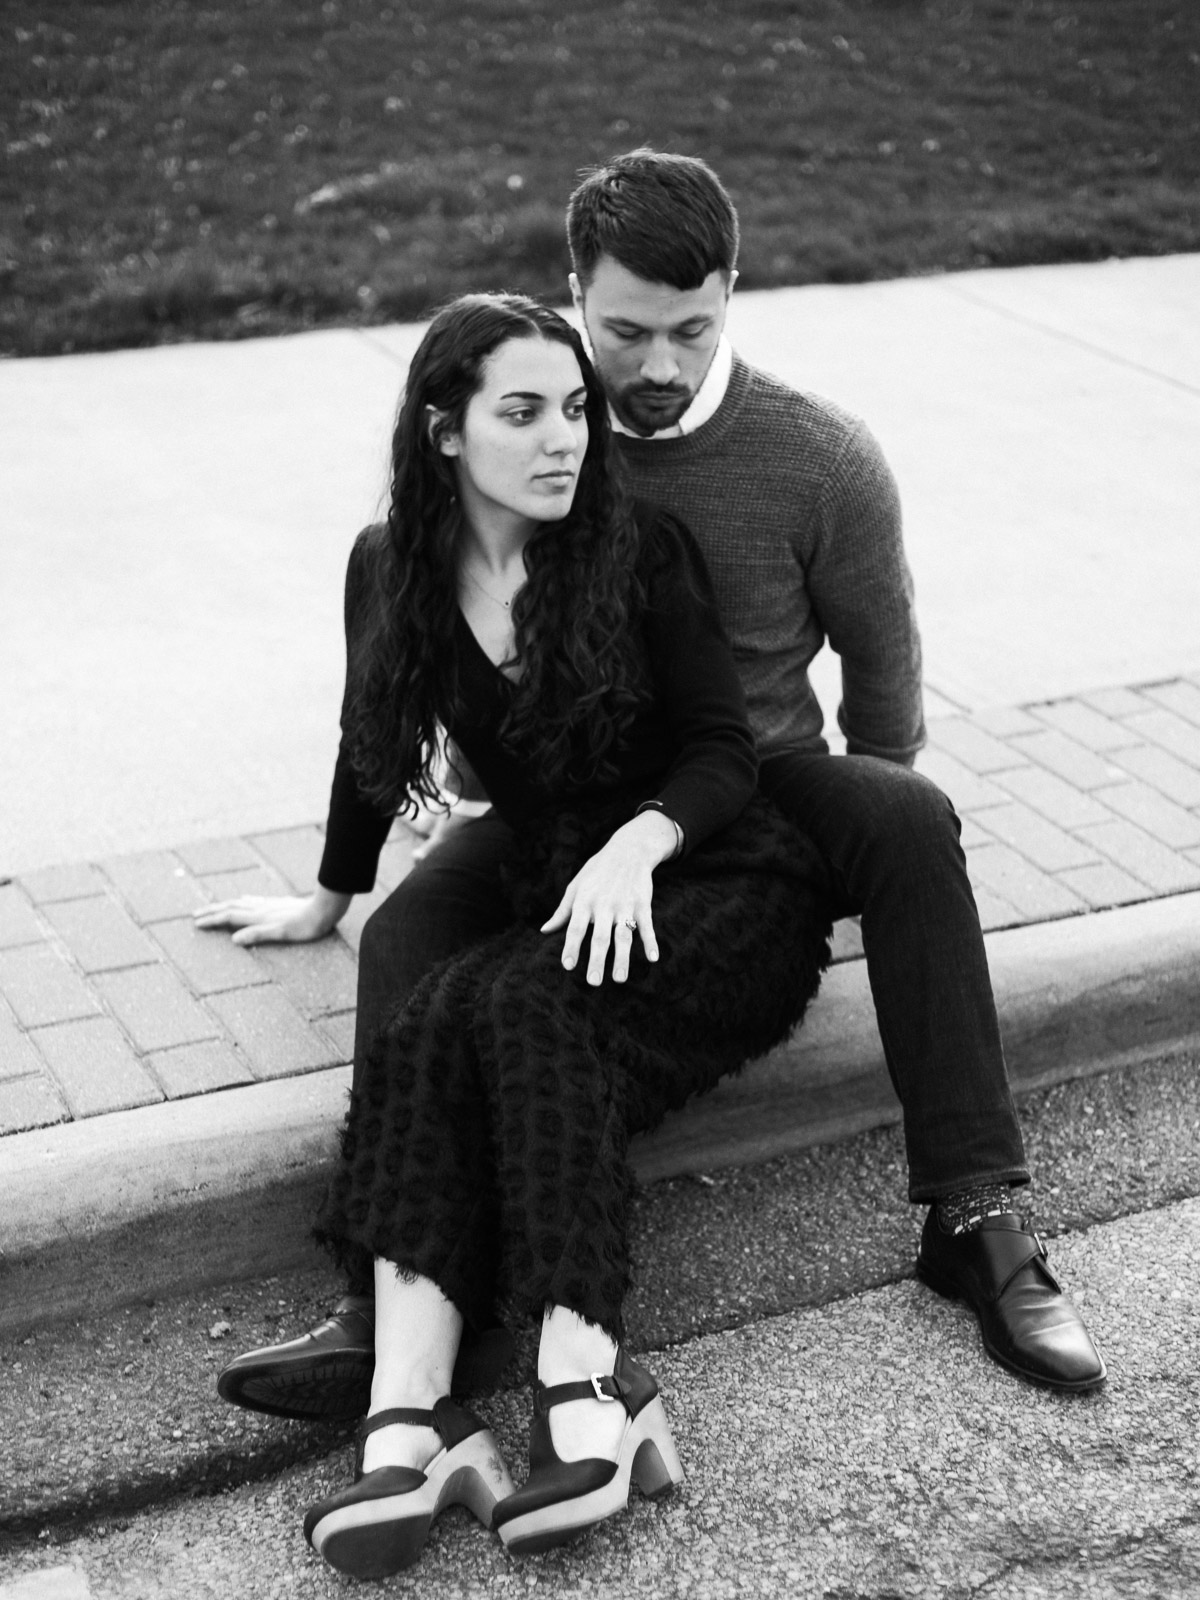 fashion-inspired-couples-photos-19.jpg